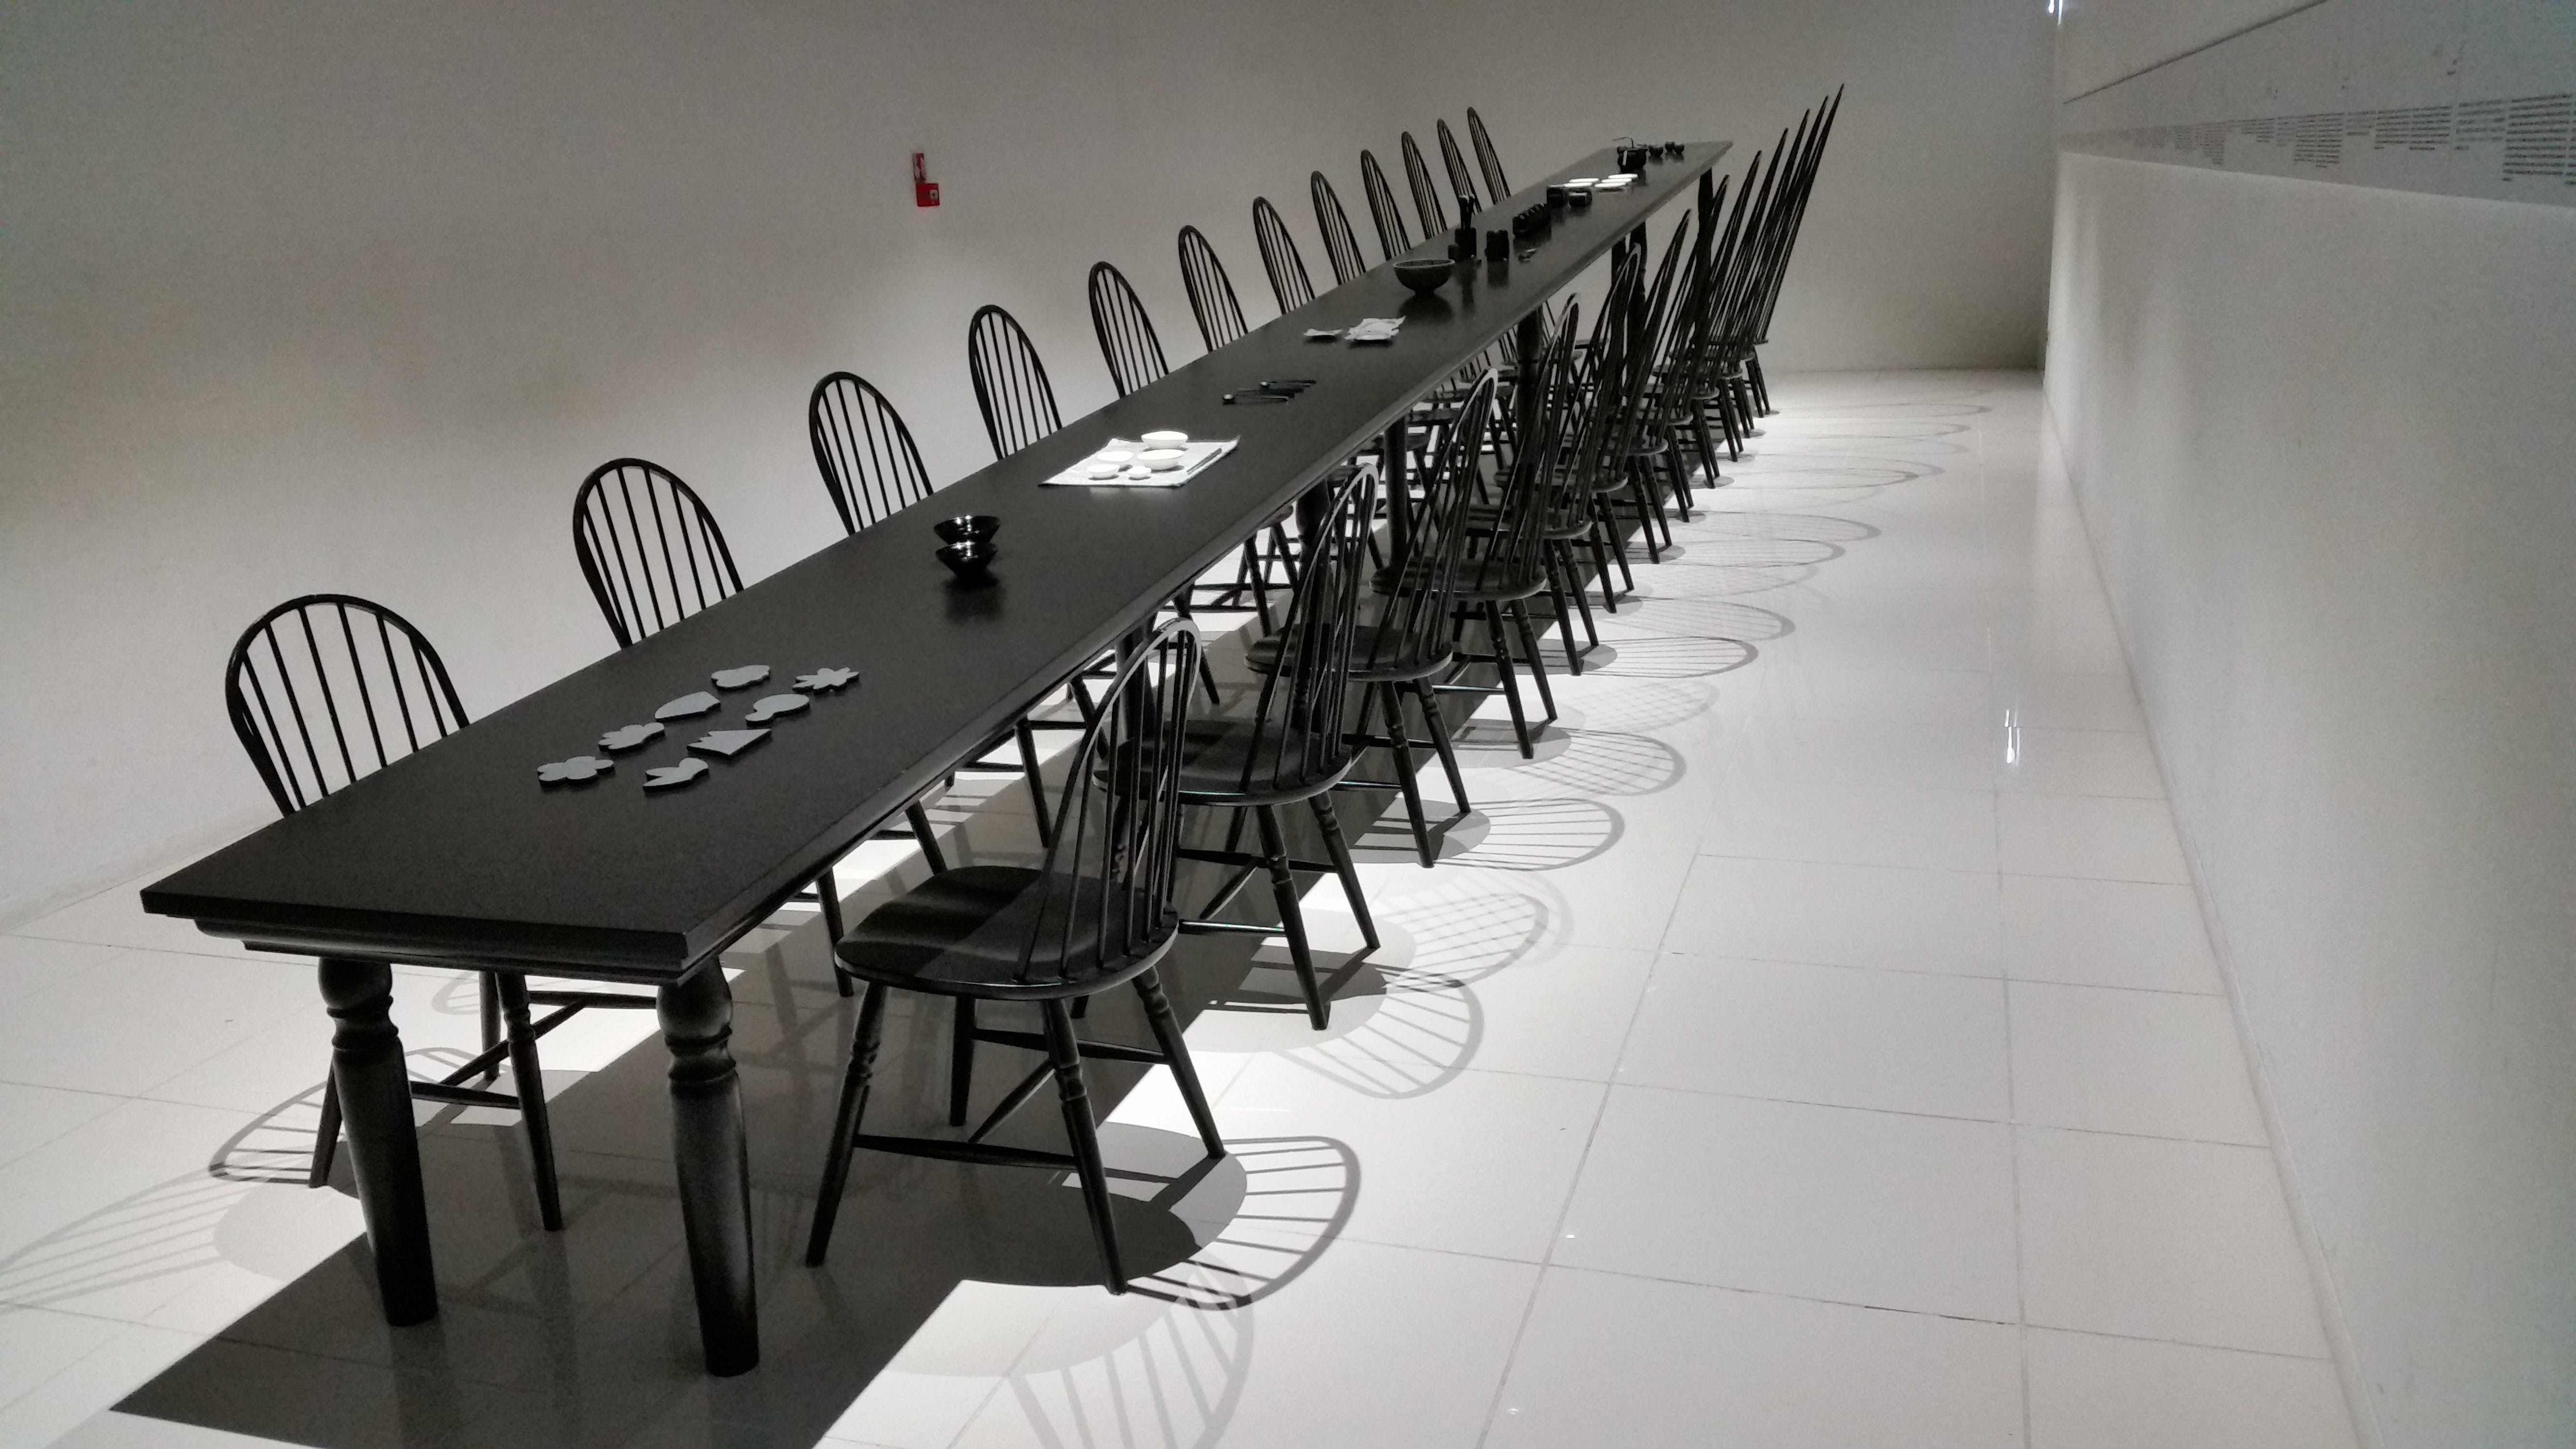 Rectangular Black Wooden Table and Chairs